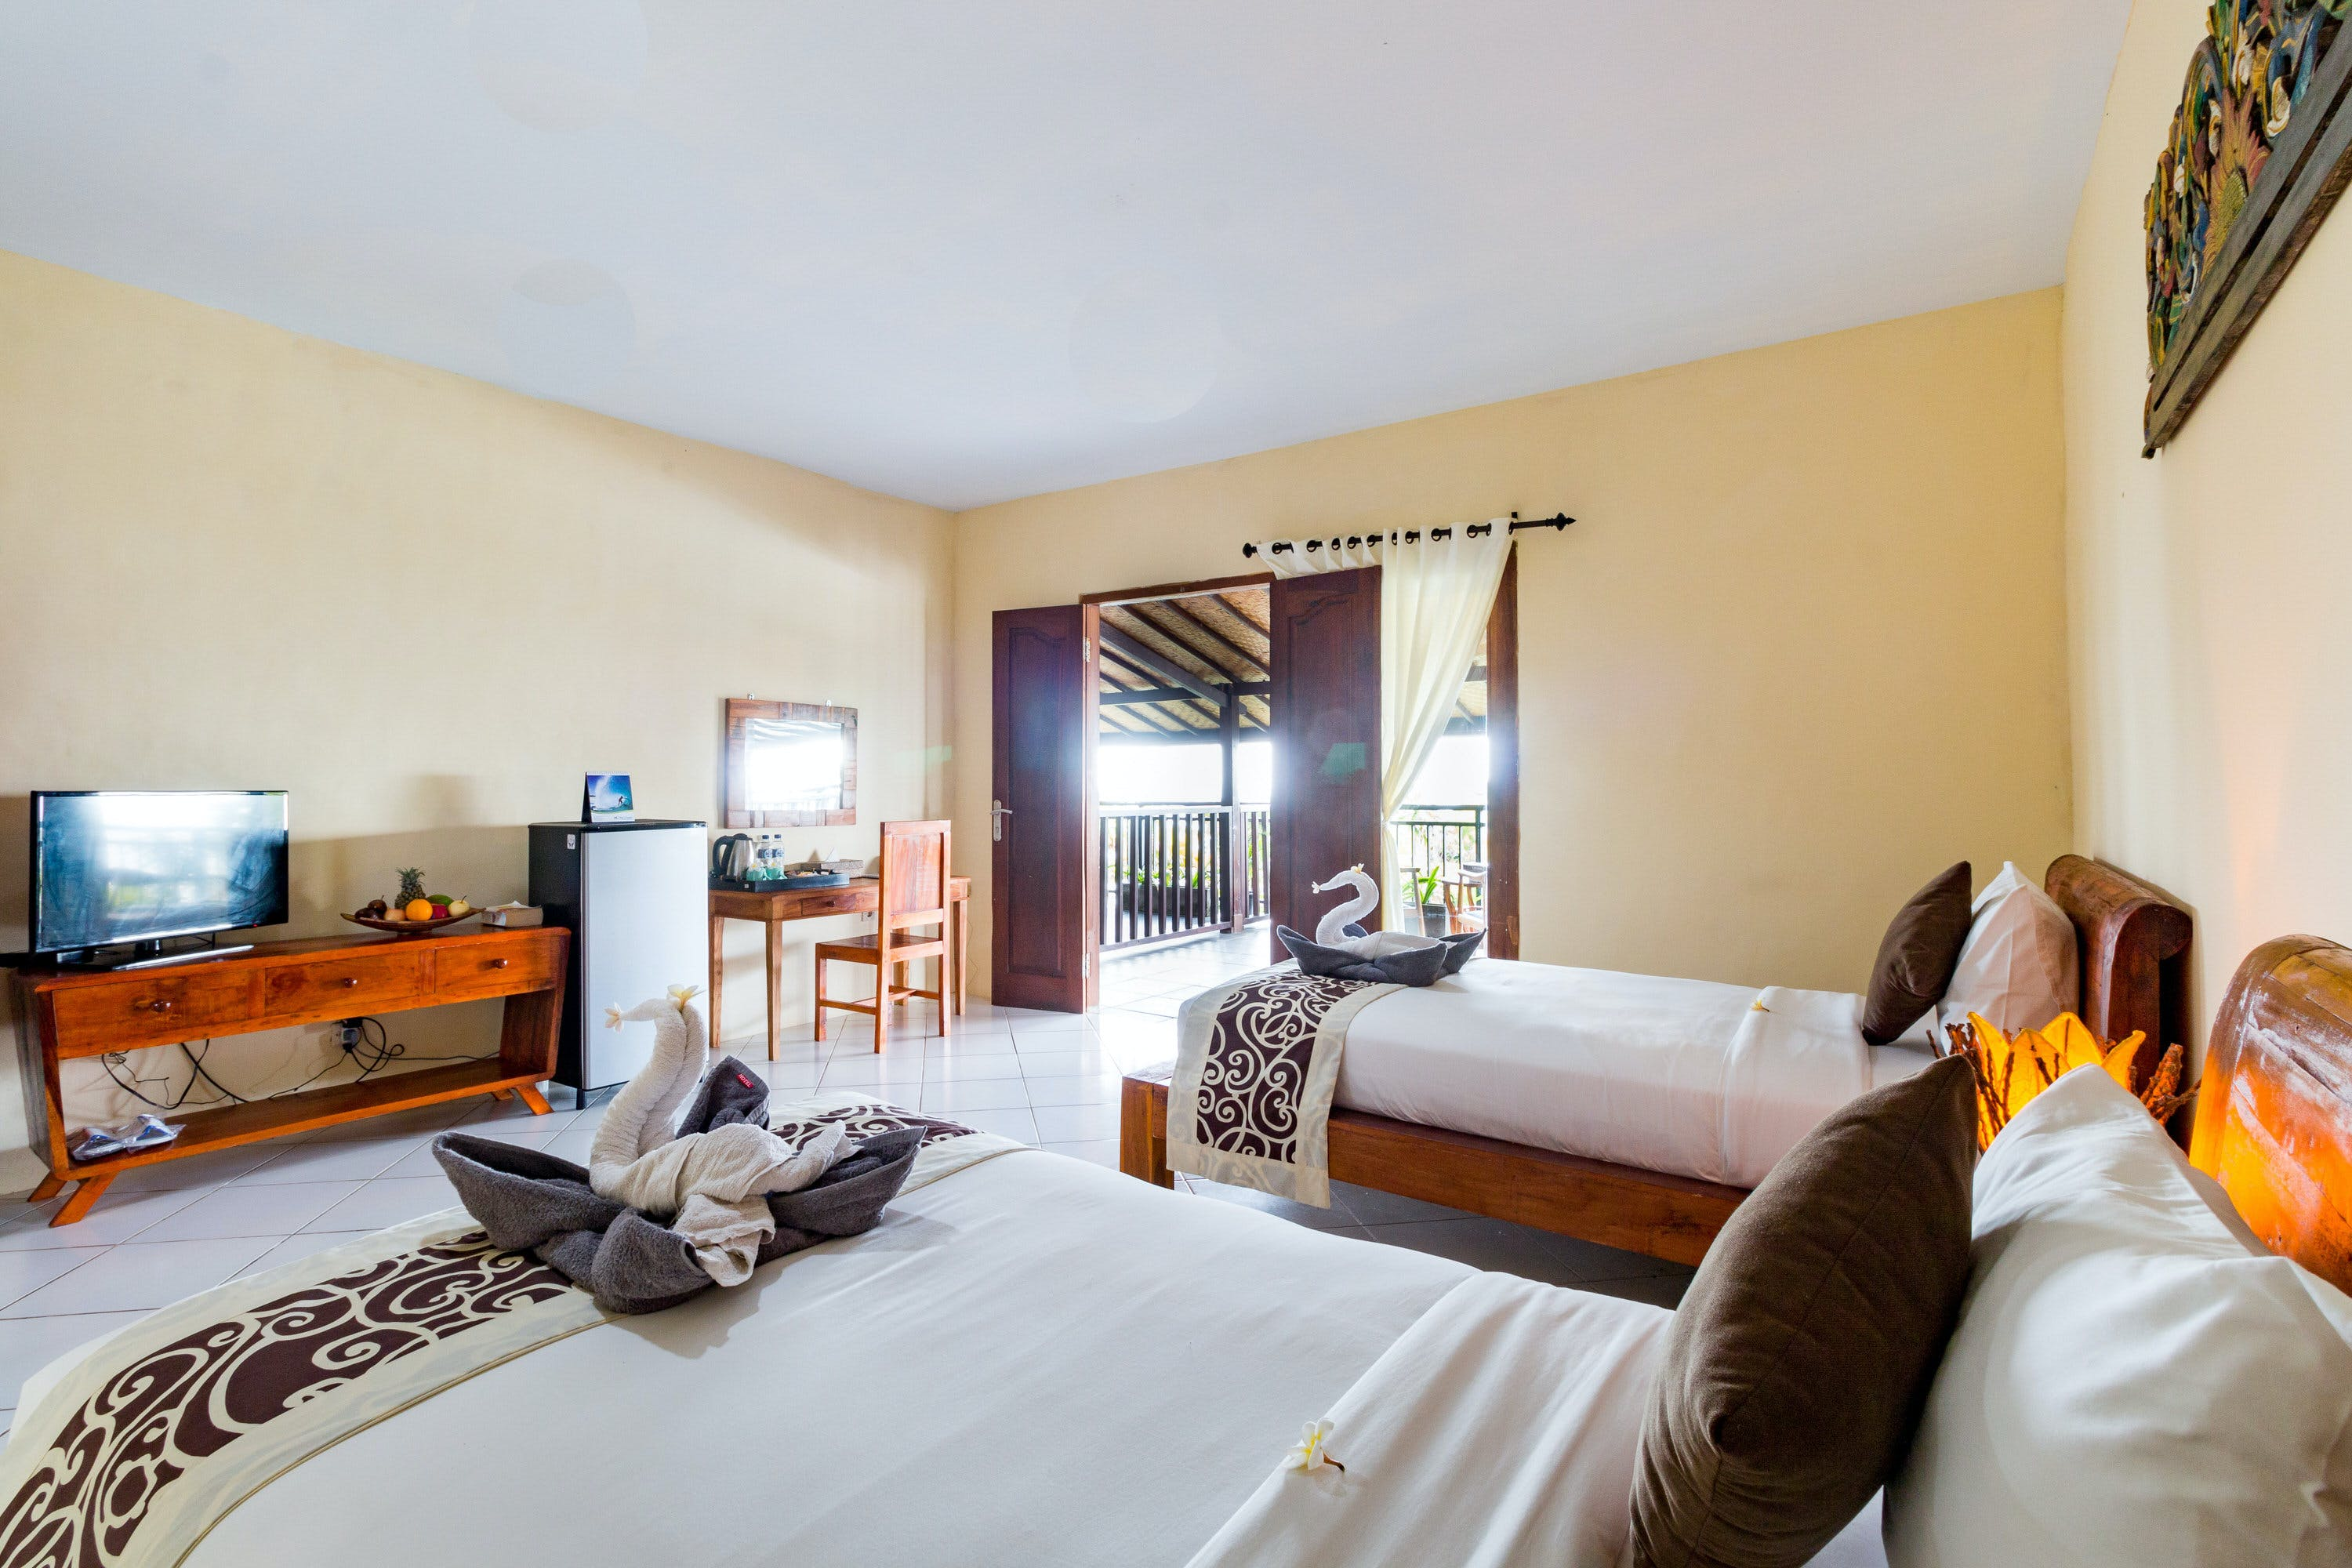 Garden View Twin Room at Sea Medewi Resort, best hotel for surfing and enjoy Medewi beach in Negara